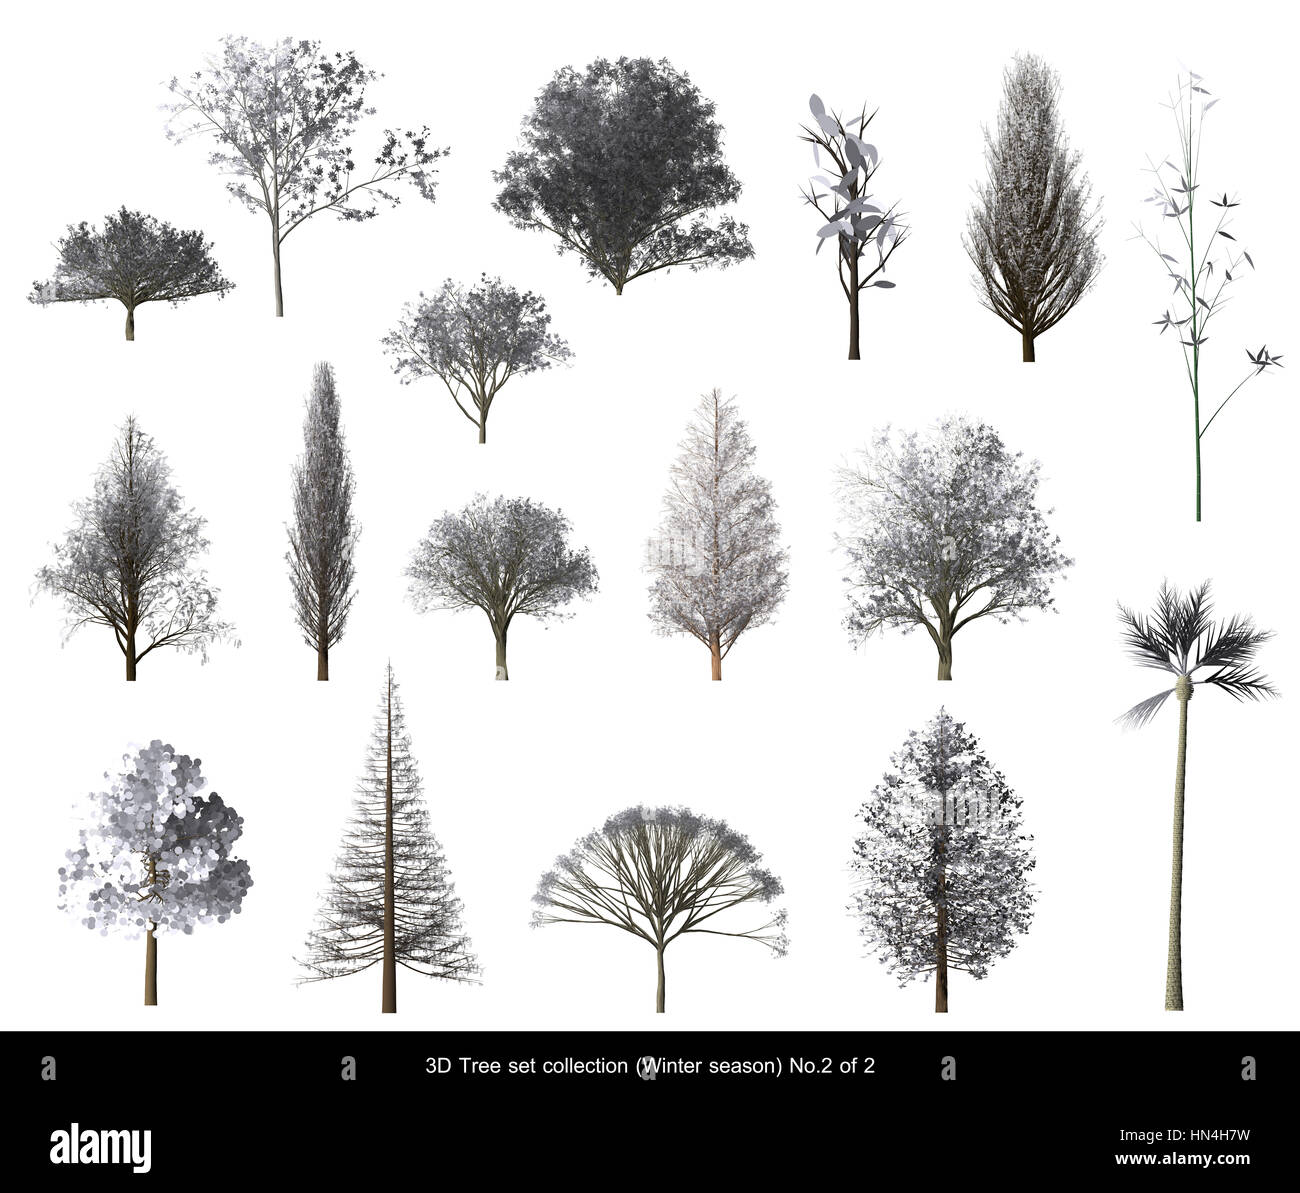 White Leaf Snow Tree Winter Season Set For Architecture Landscape Design,  3D Tree Isolated On